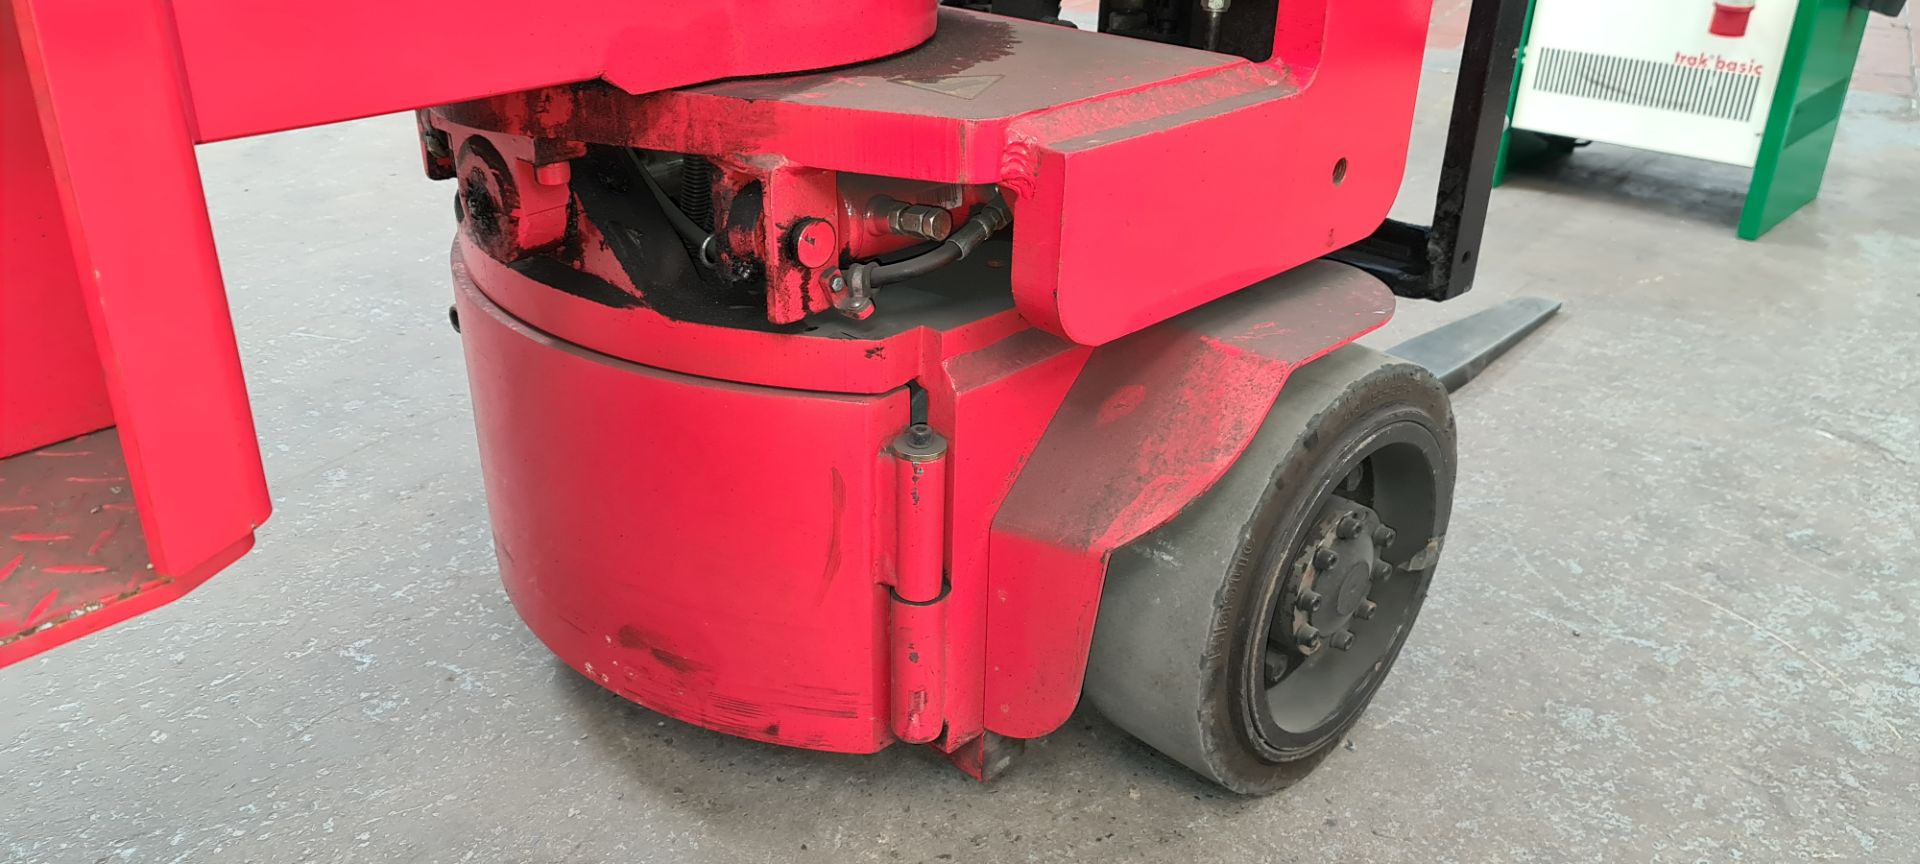 2014 Flexi Euro AC 'bendy' electric Fork Lift Truck - Image 13 of 29